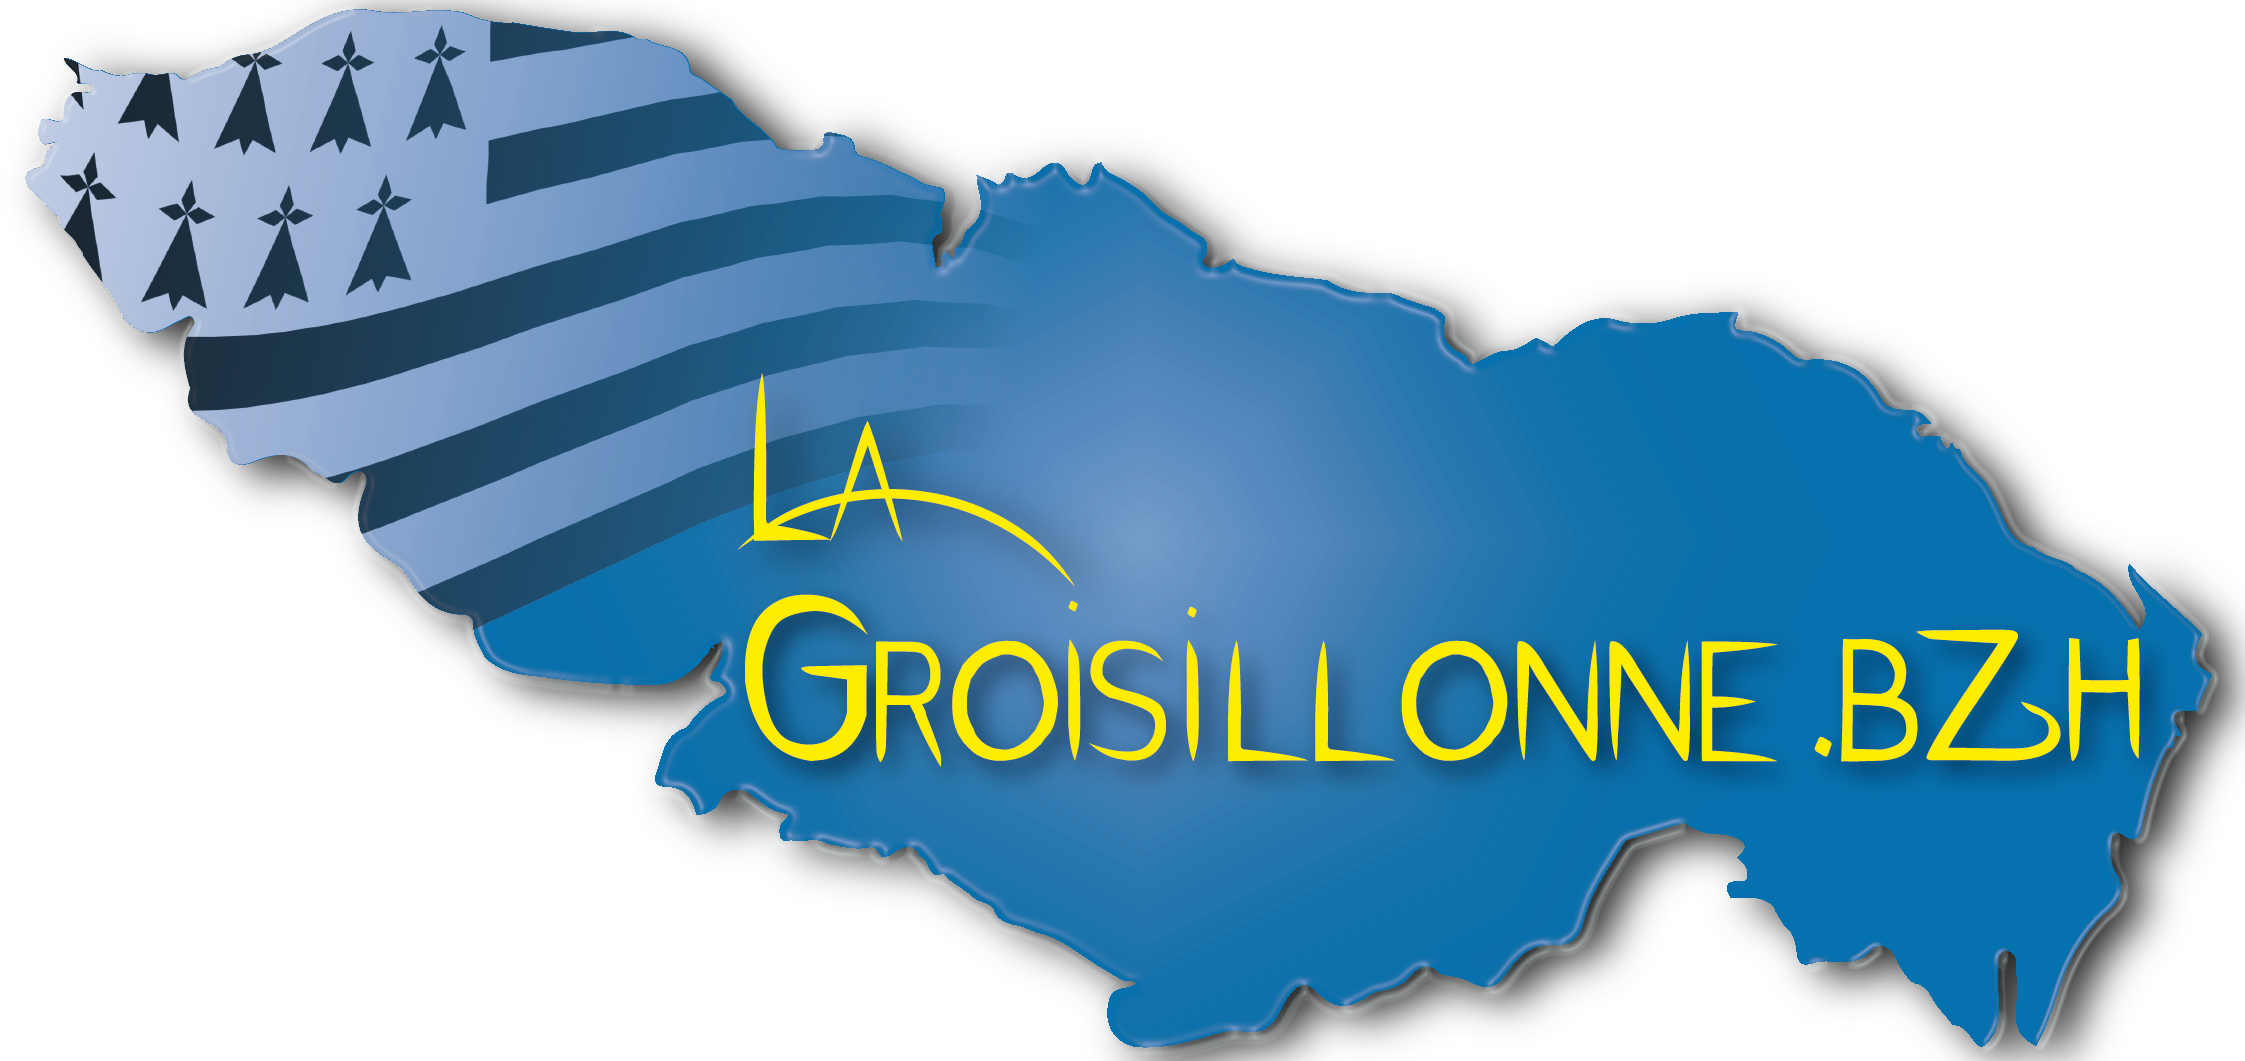 logo-asso2.png